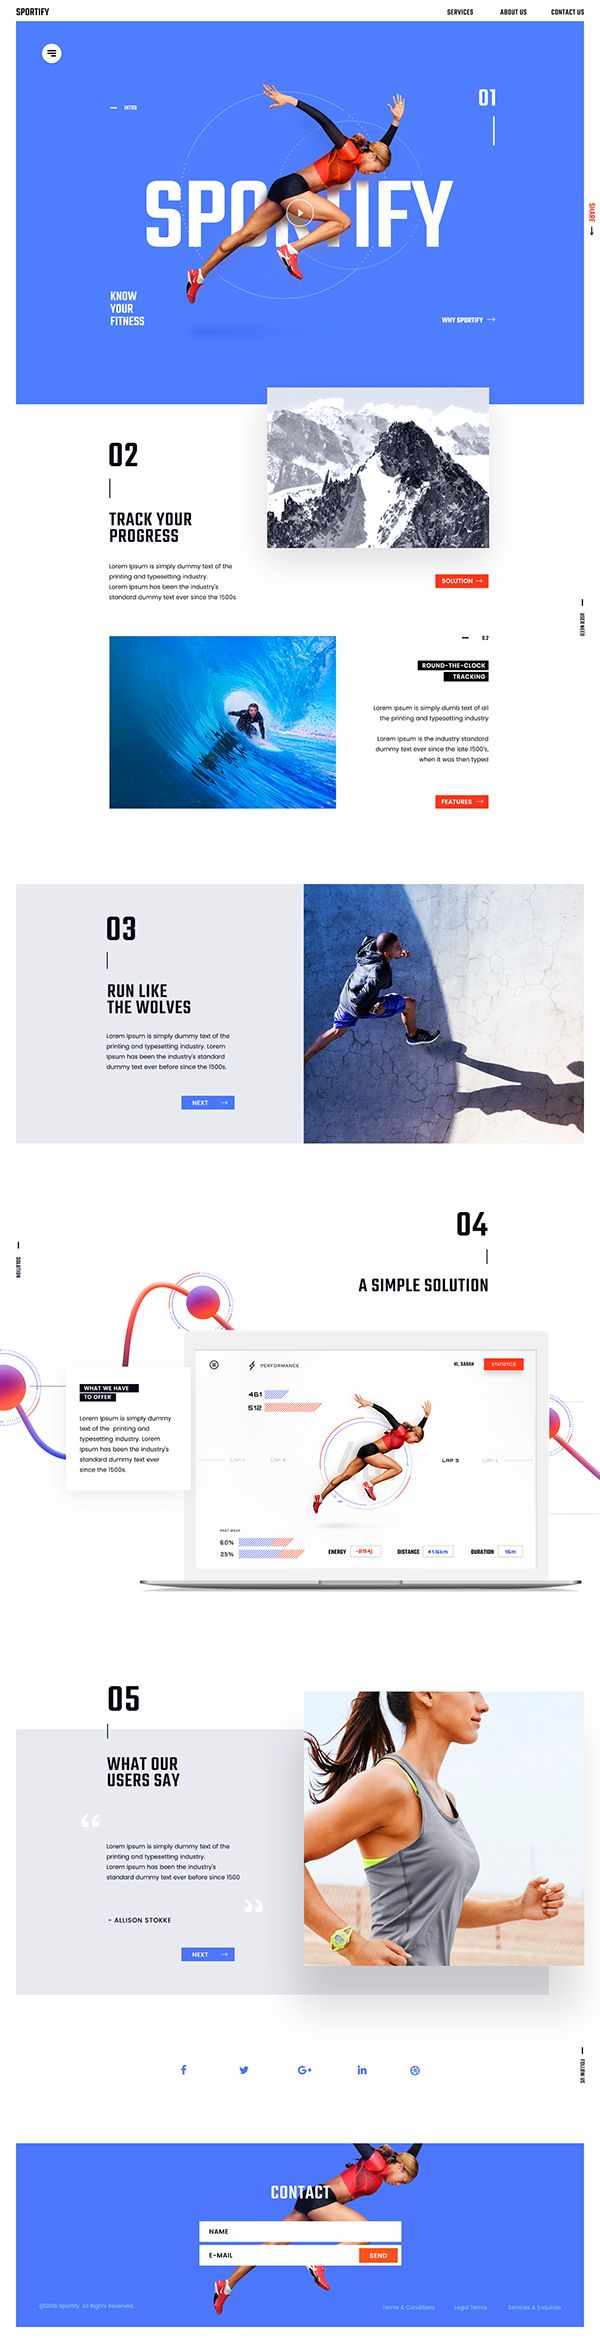 Sportify Website Landing Page helping users understand features and functions of app - tracking sports and exercise activities